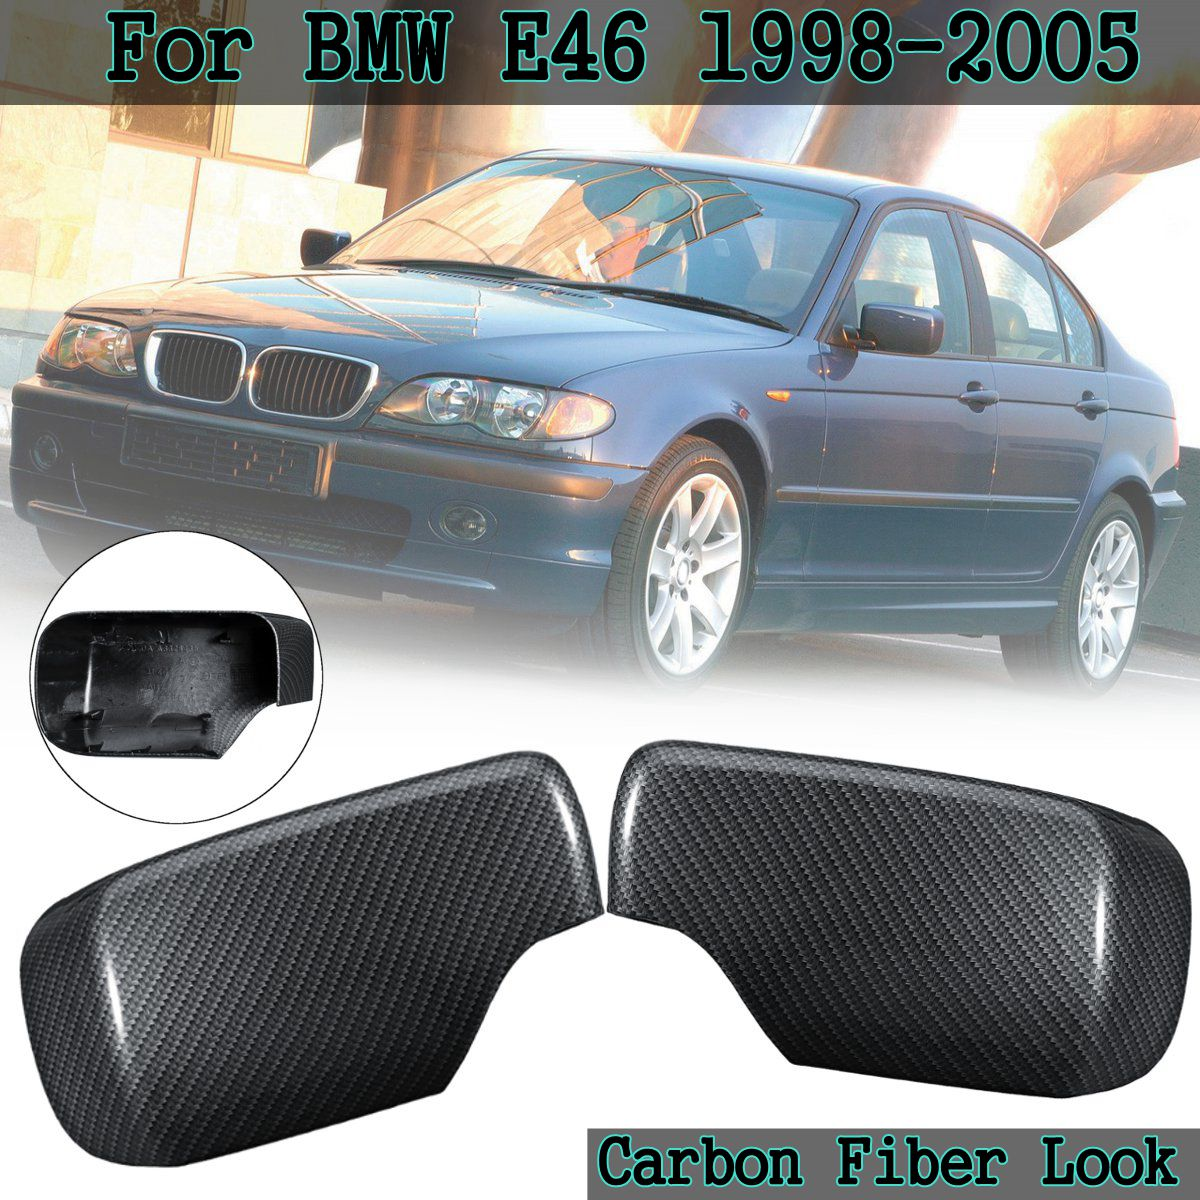 1 Pair Car Styling Carbon Fiber Wing Door Rearview Heated Mirrors Cap Mirror Covers For BMW E46 1998-2005 2pcs heated door wing mirrors glass blue for vw golf 2013 2016 mk7 heated side mirror heating tinted rearview mirror car styling